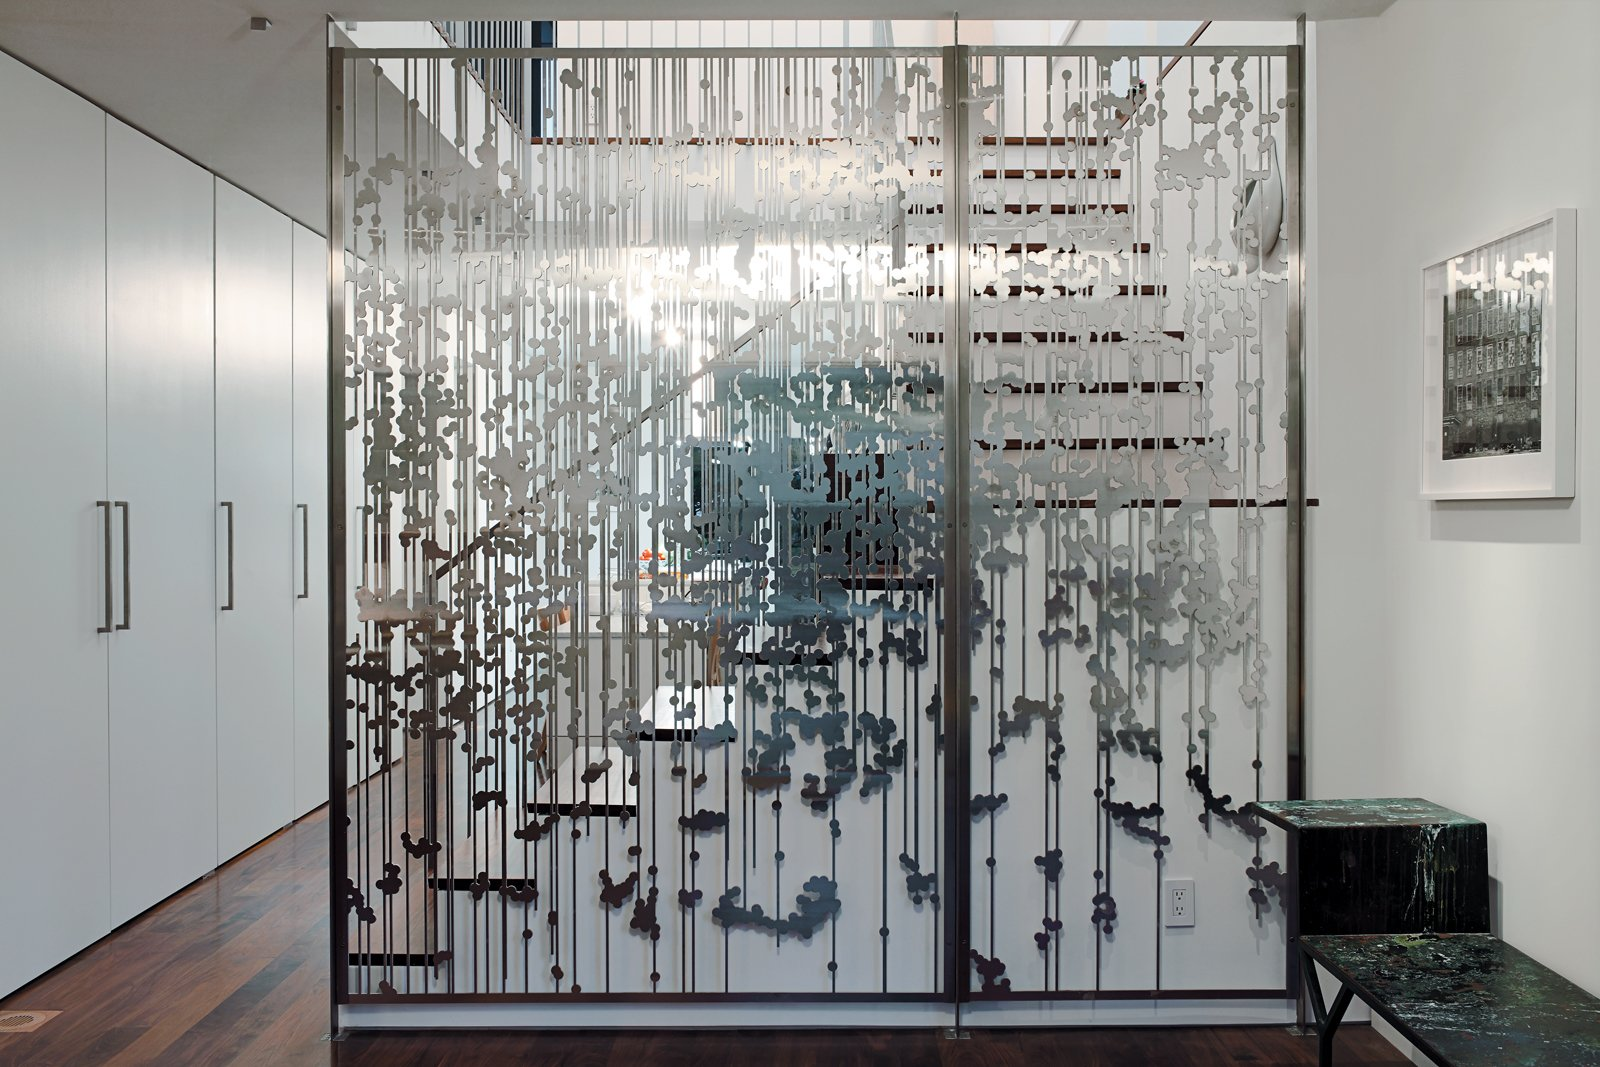 Another view Magnes's aluminum screen divider.  190+ Best Modern Staircase Ideas by Dwell from An 1850 schoolhouse in Milford, Pennsylvania